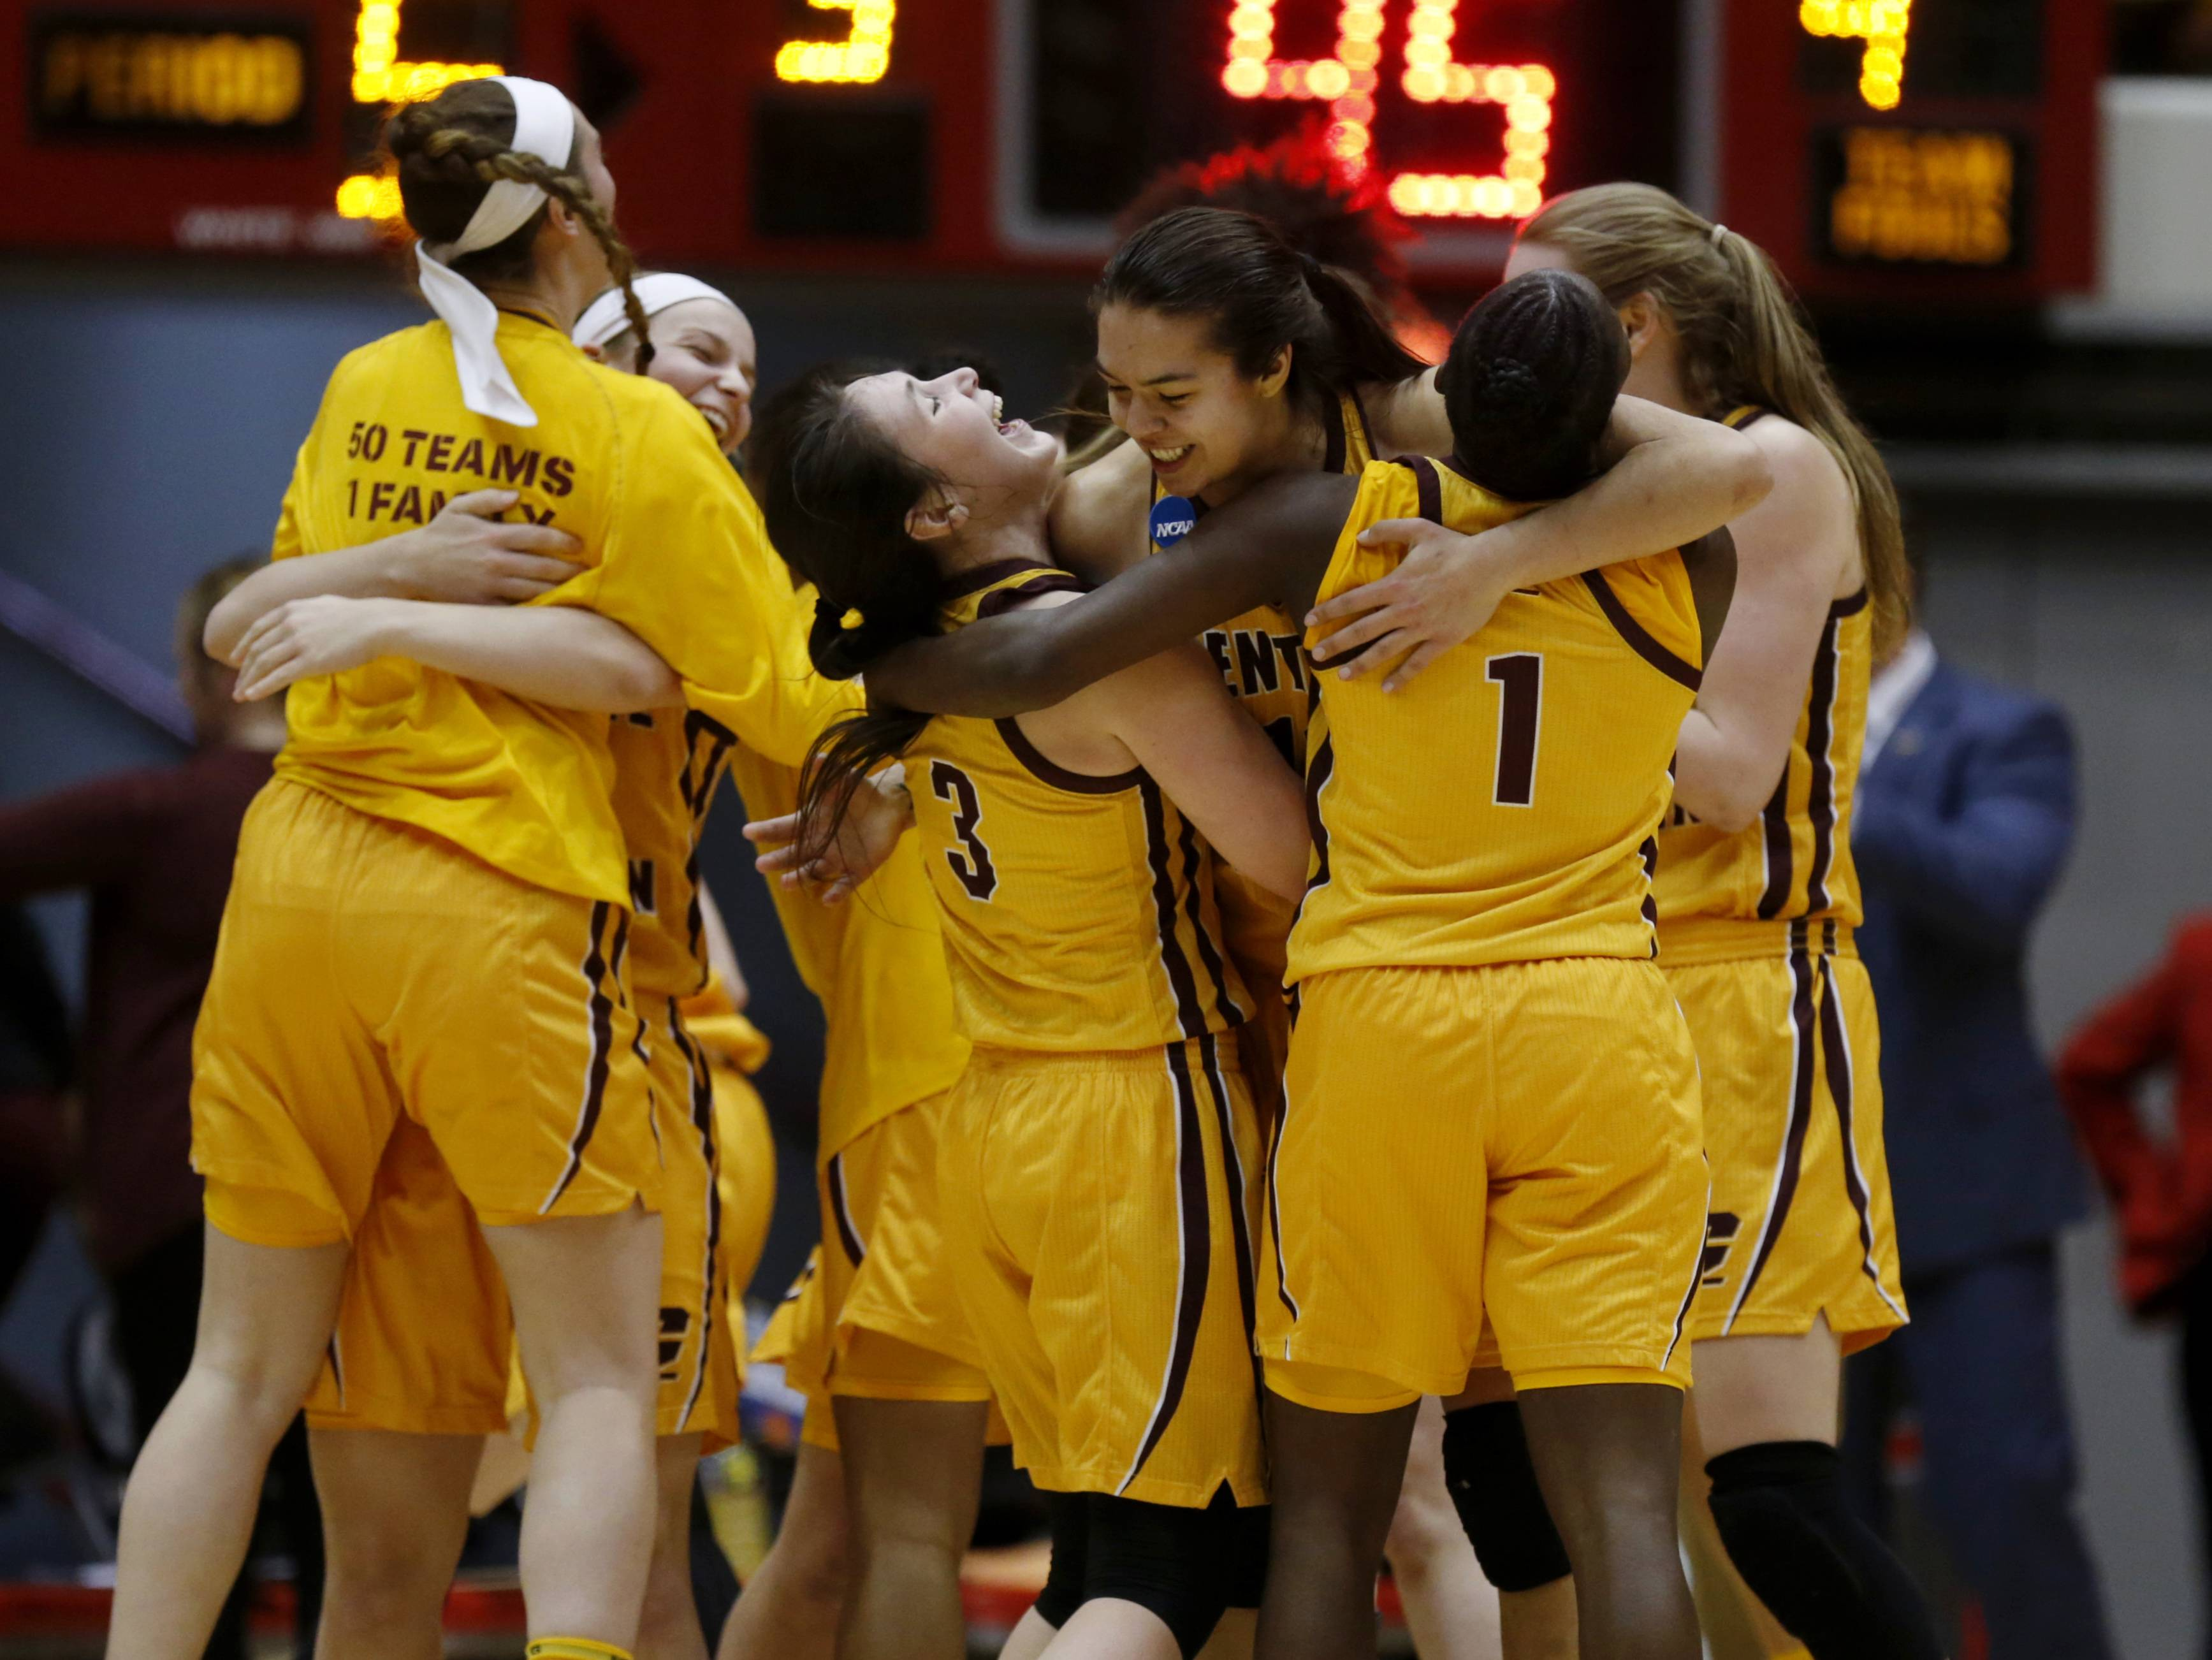 Members of the Central Michigan basketball team celebrate their second-round victory over Ohio State in the NCAA women's college basketball tournament in Columbus, Ohio, on Monday. They face Oregon in Spokane on Saturday.